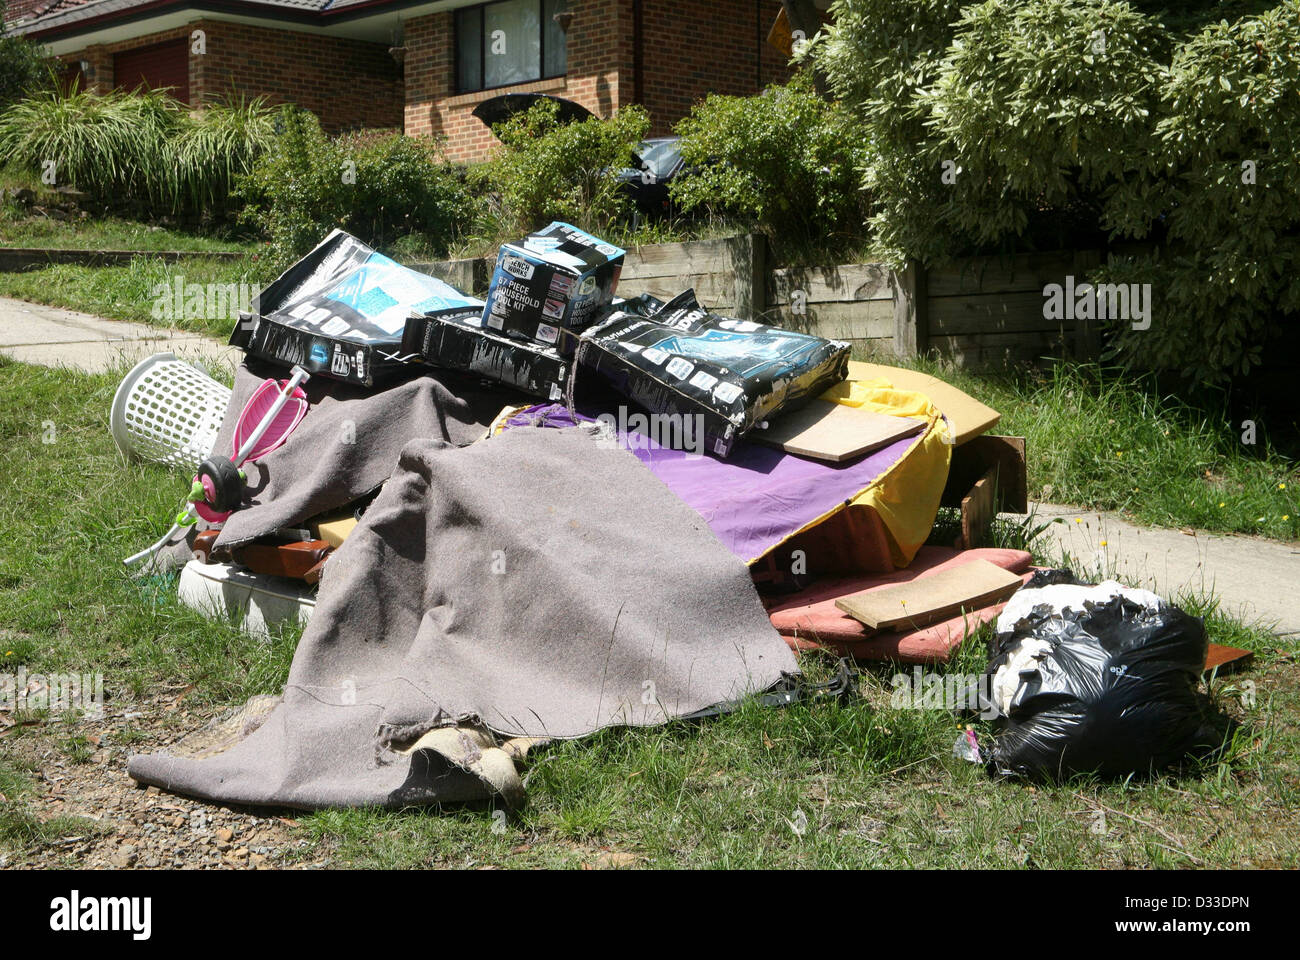 Junk thrown out for recycling in Australia - Stock Image